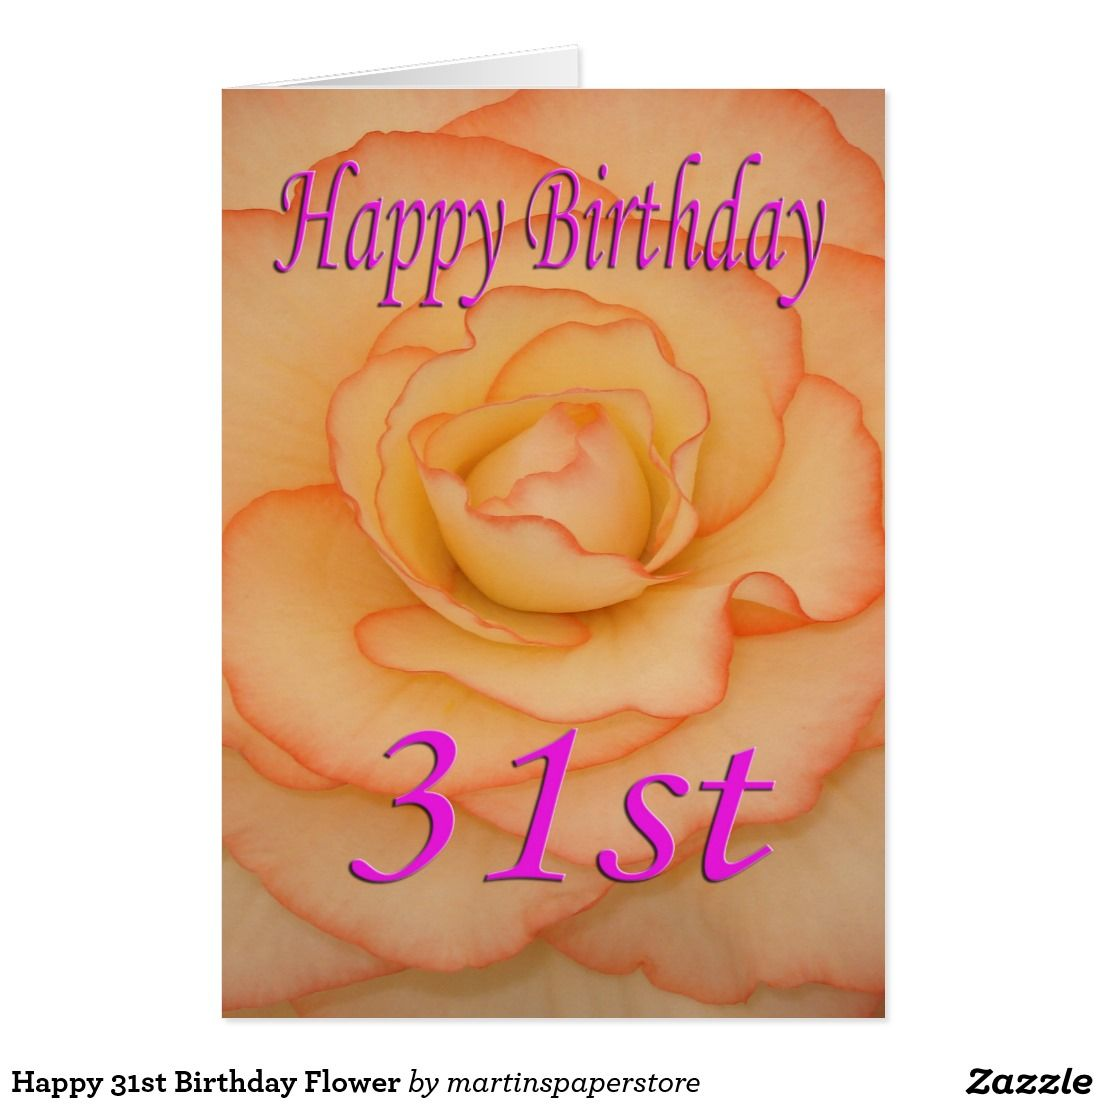 Happy 31st Birthday Flower Card All Things Zazzle Pinterest